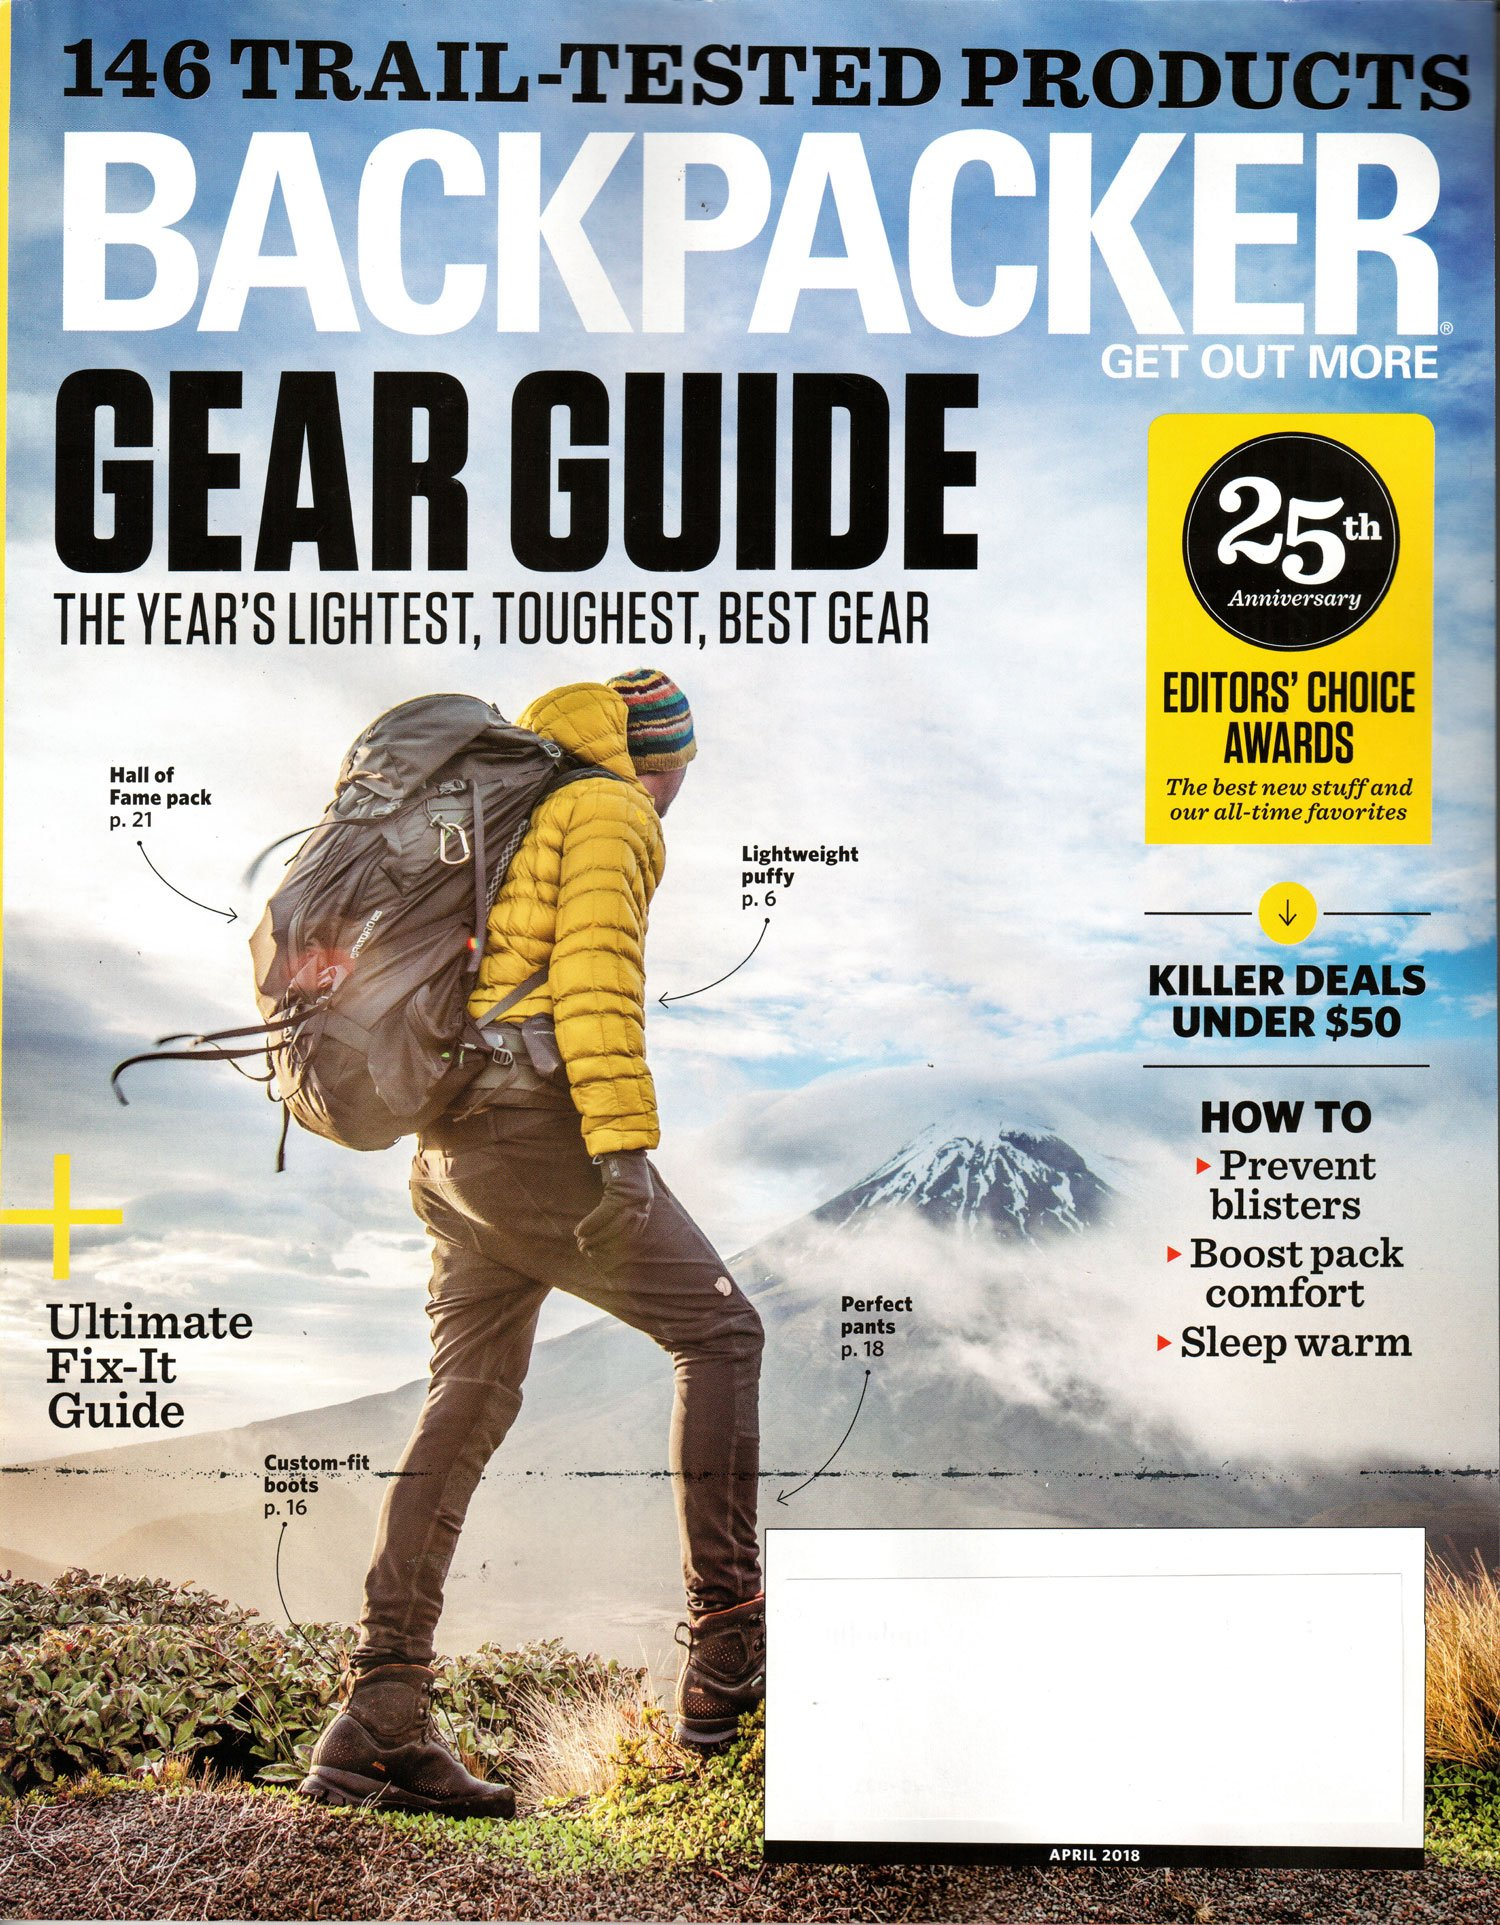 backpacker magazine april 2018 gear guide various amazon com books rh amazon com Guide Gear Tree Stands trail magazine gear guide